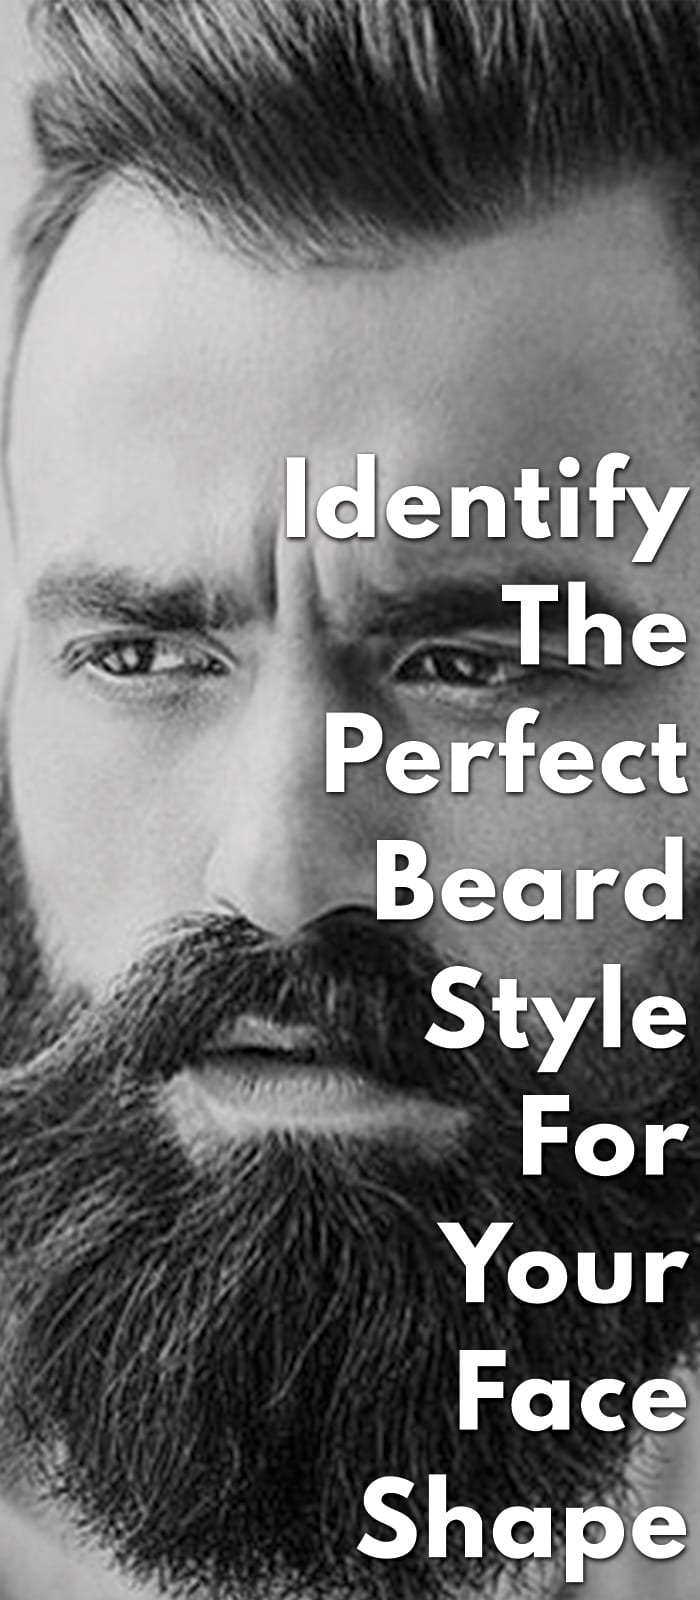 Identify-The-Perfect-Beard-Style-For-Your-Face-Shape.